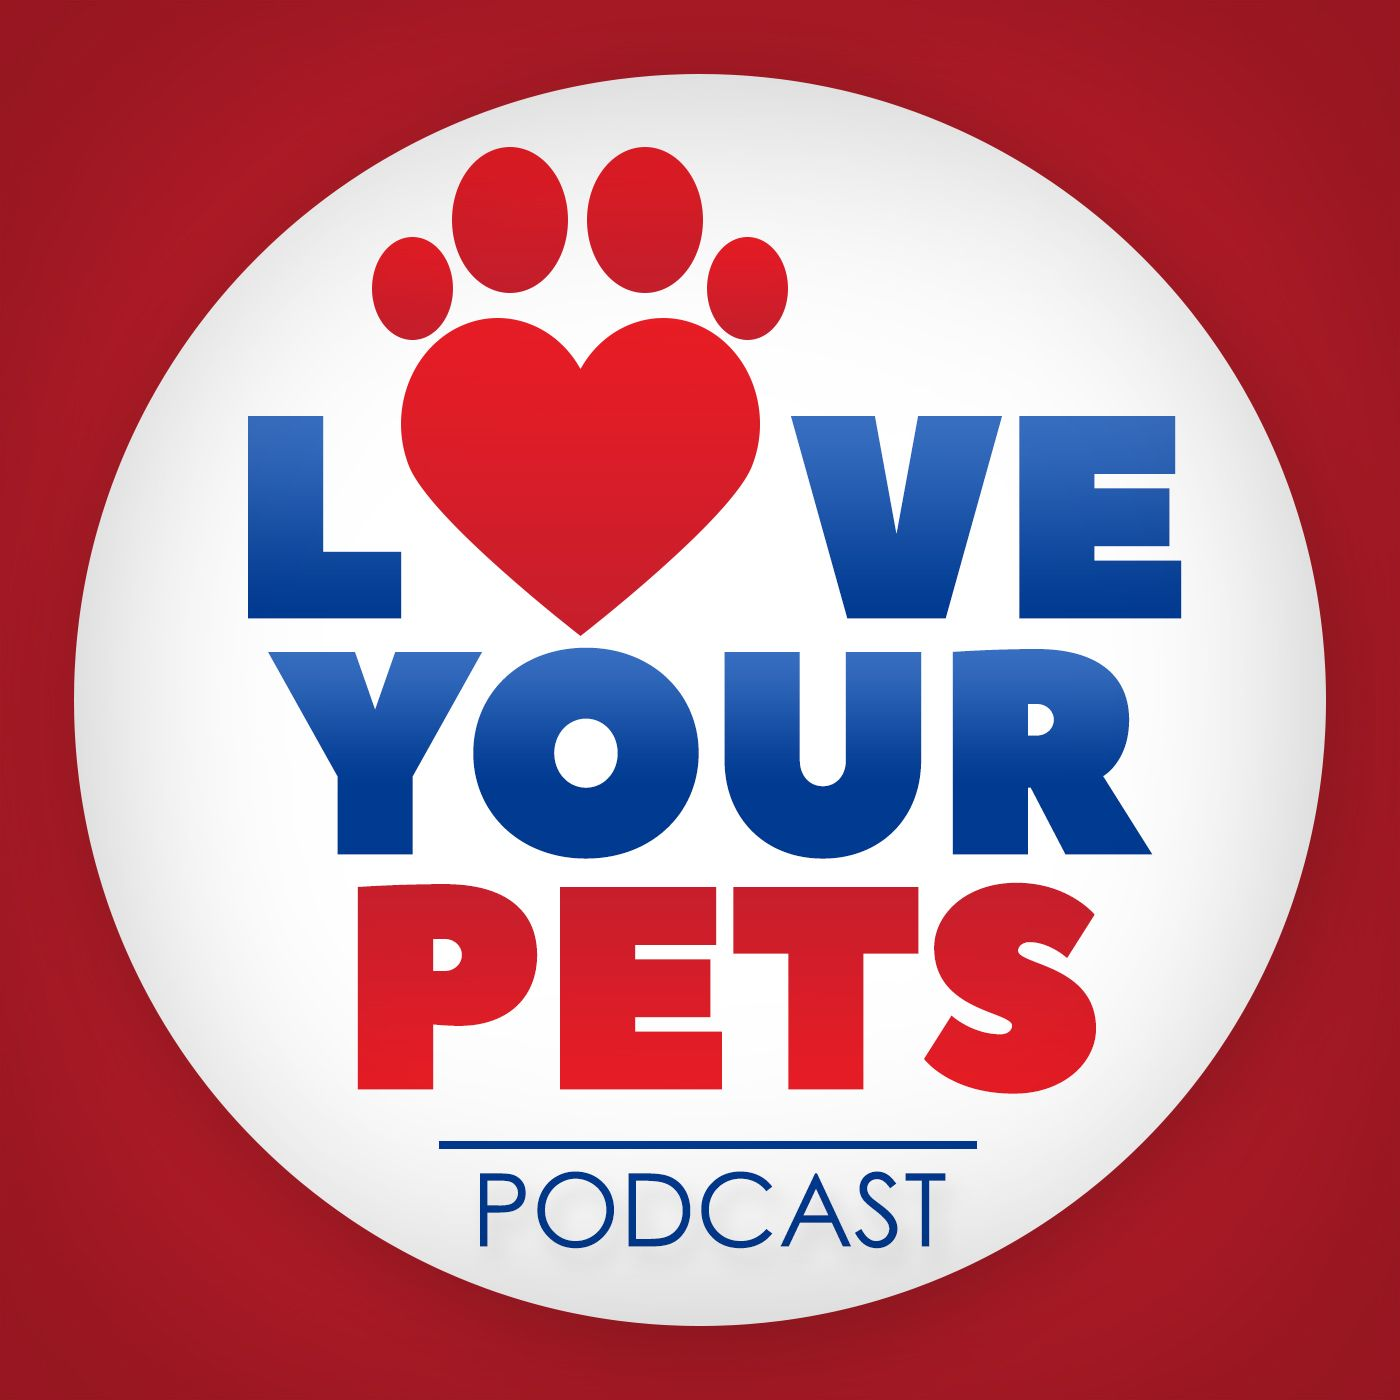 Love Your Pets Podcast